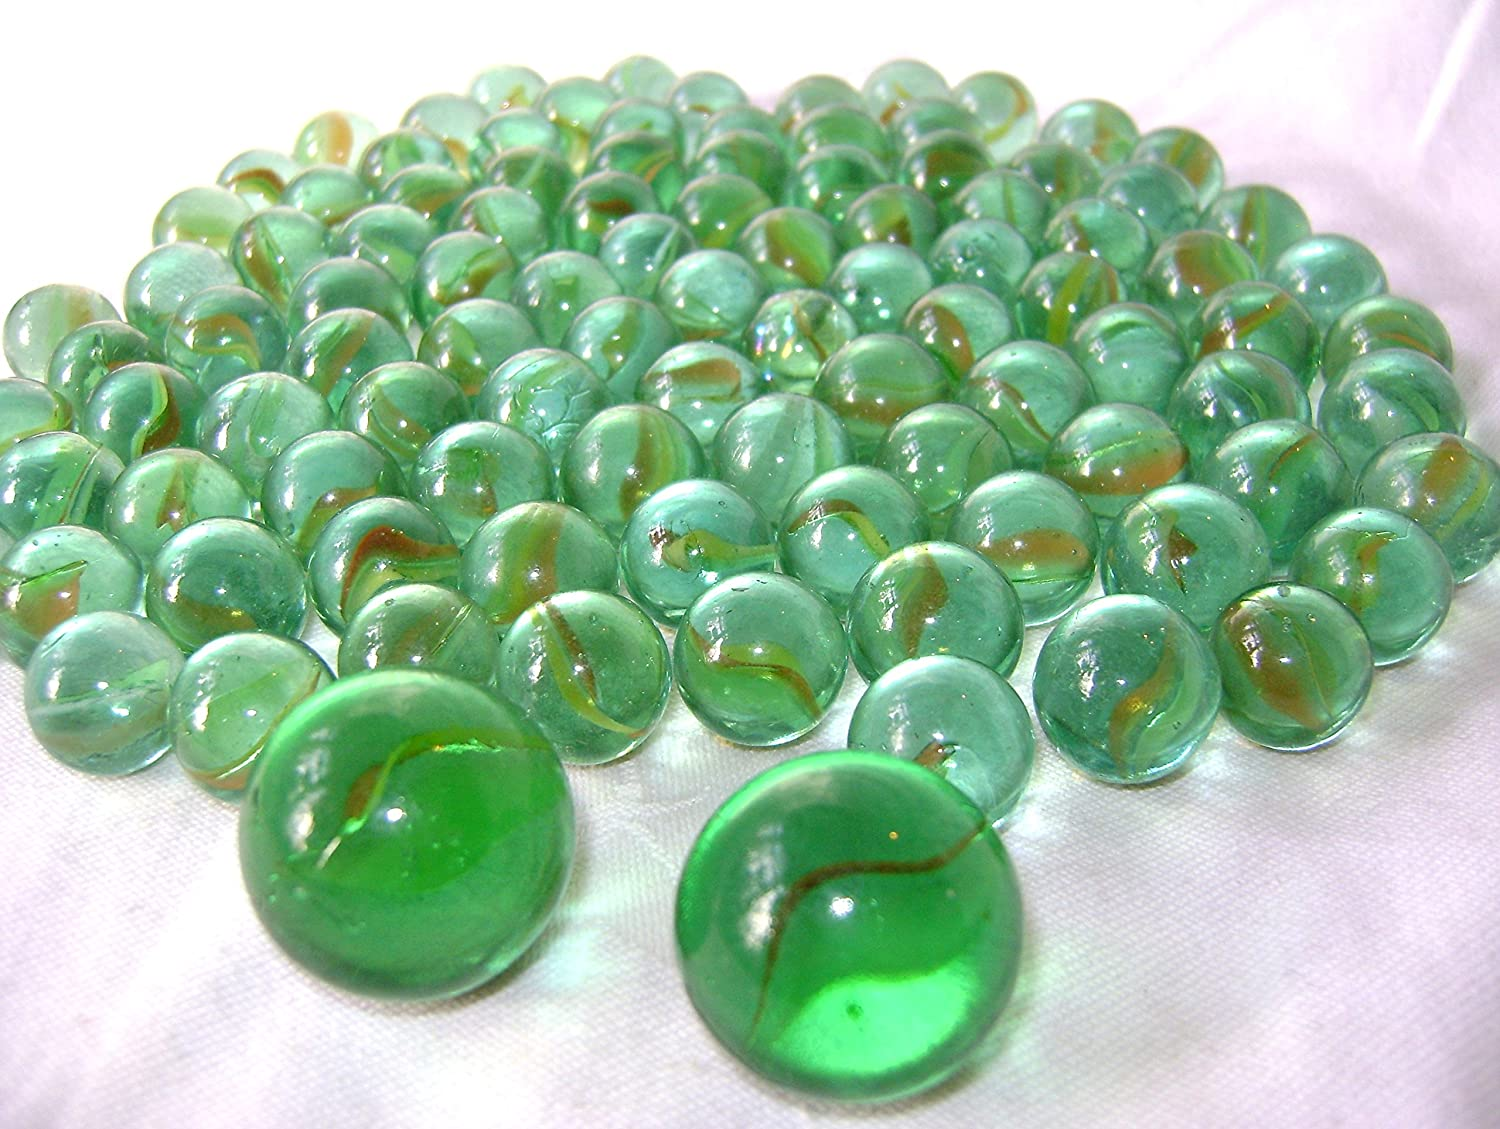 NEW 102 CAT'S EYE GLASS MARBLES IN NET inc 2 DOBBER SHOOTER MARBLE KNIGHT